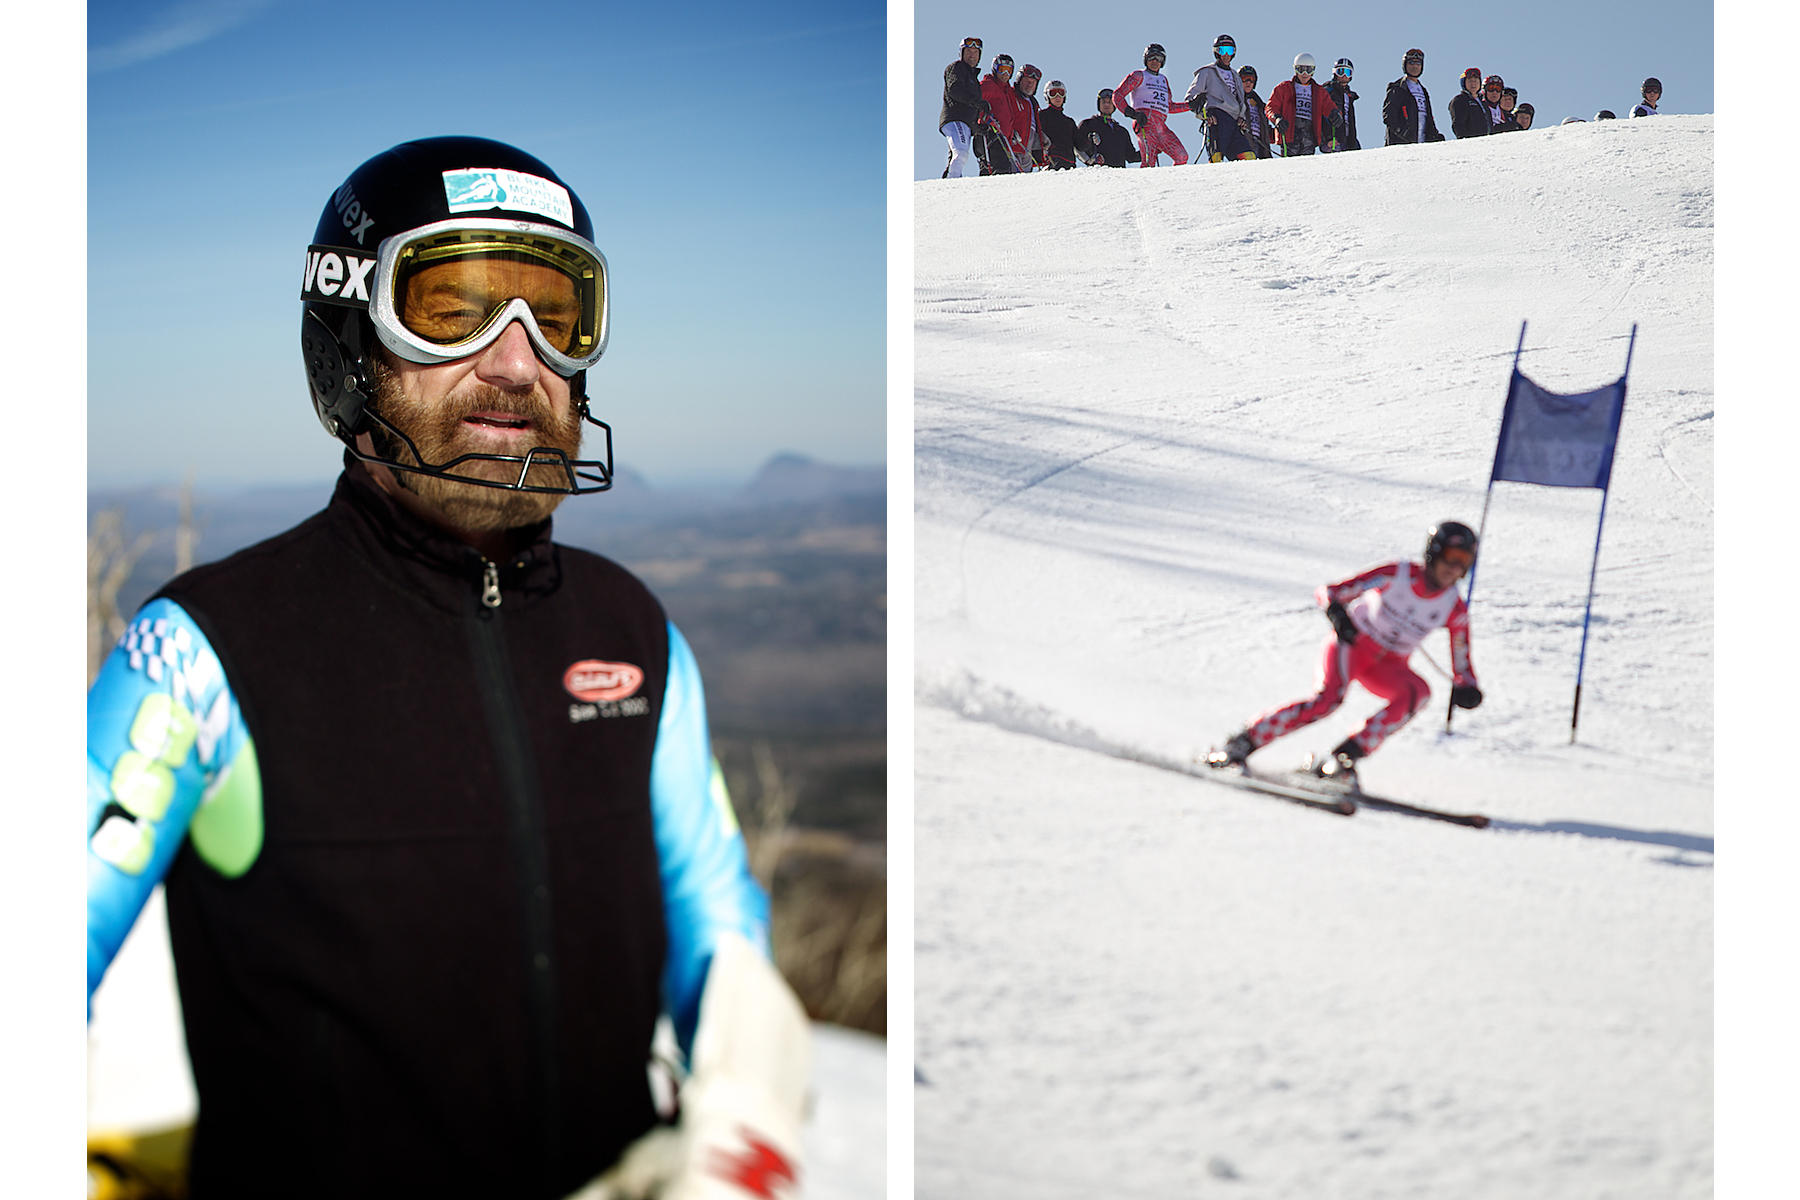 Senior Ski Racers competeing in Vermont.